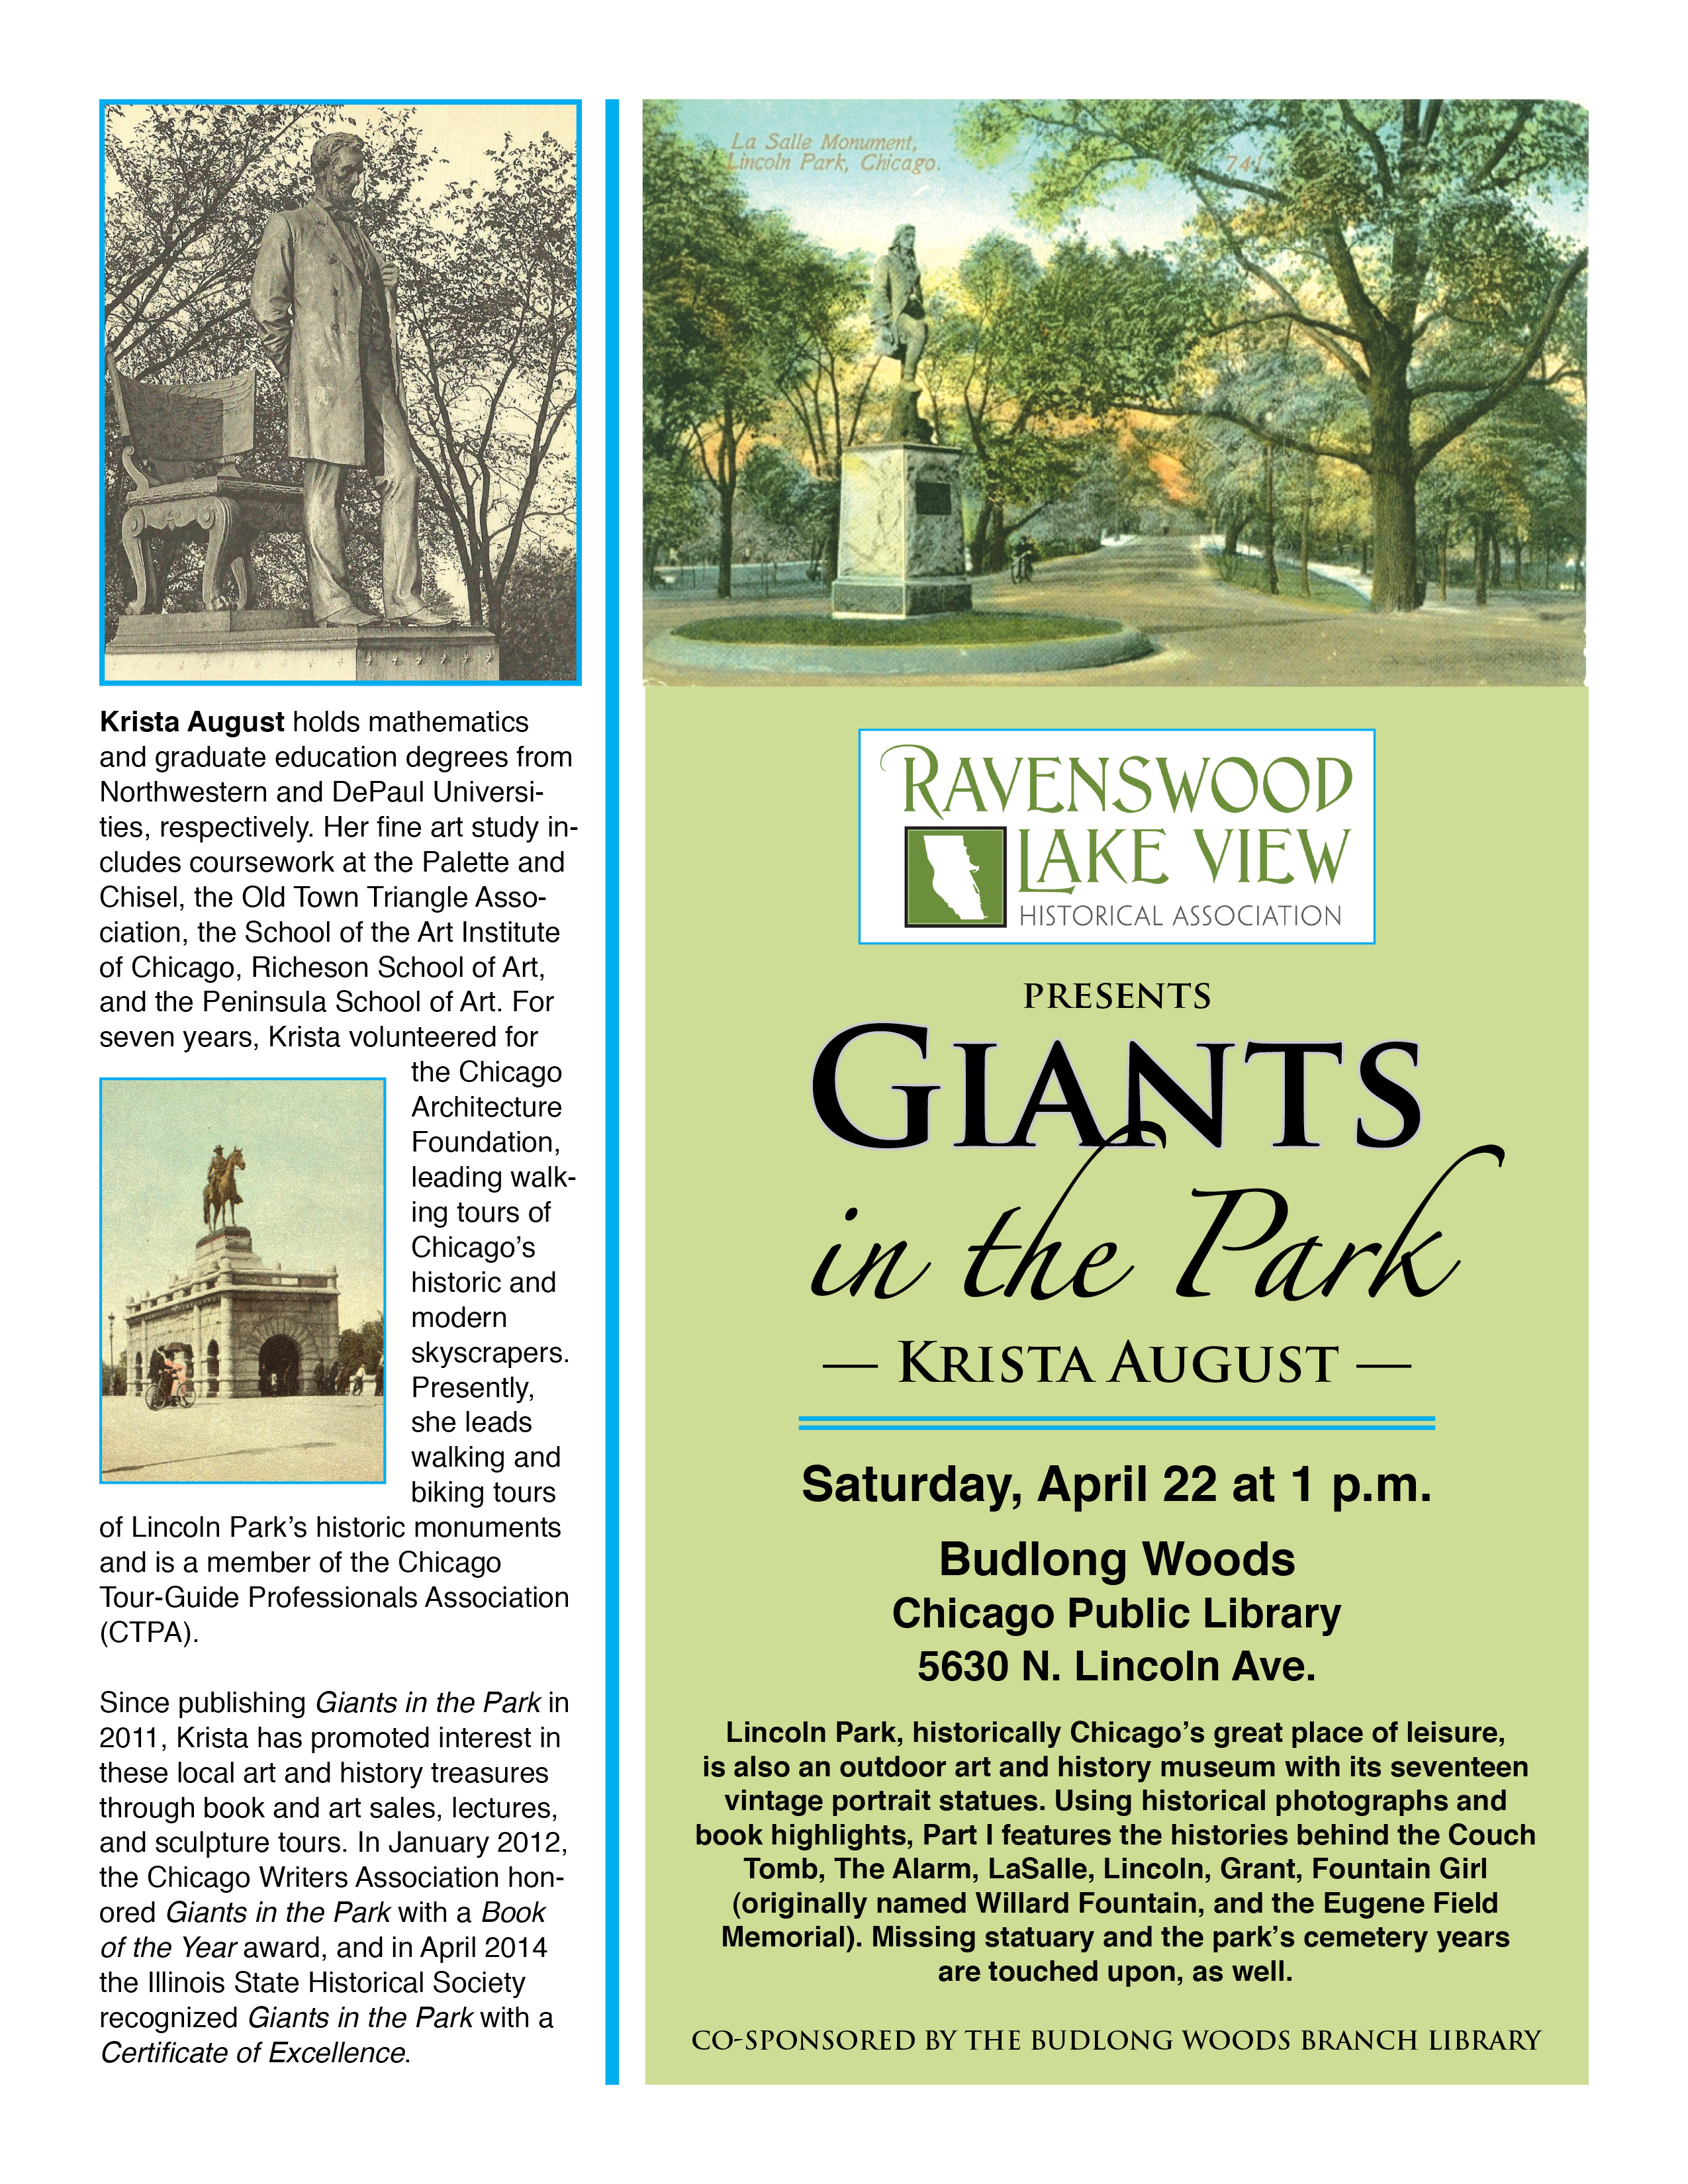 Giants in the Park: The Portrait Statues of Lincoln Park, Saturday, April 22, 1:00 p.m., Budlong Woods Chicago Public Library, 5630 N. Lincoln Ave